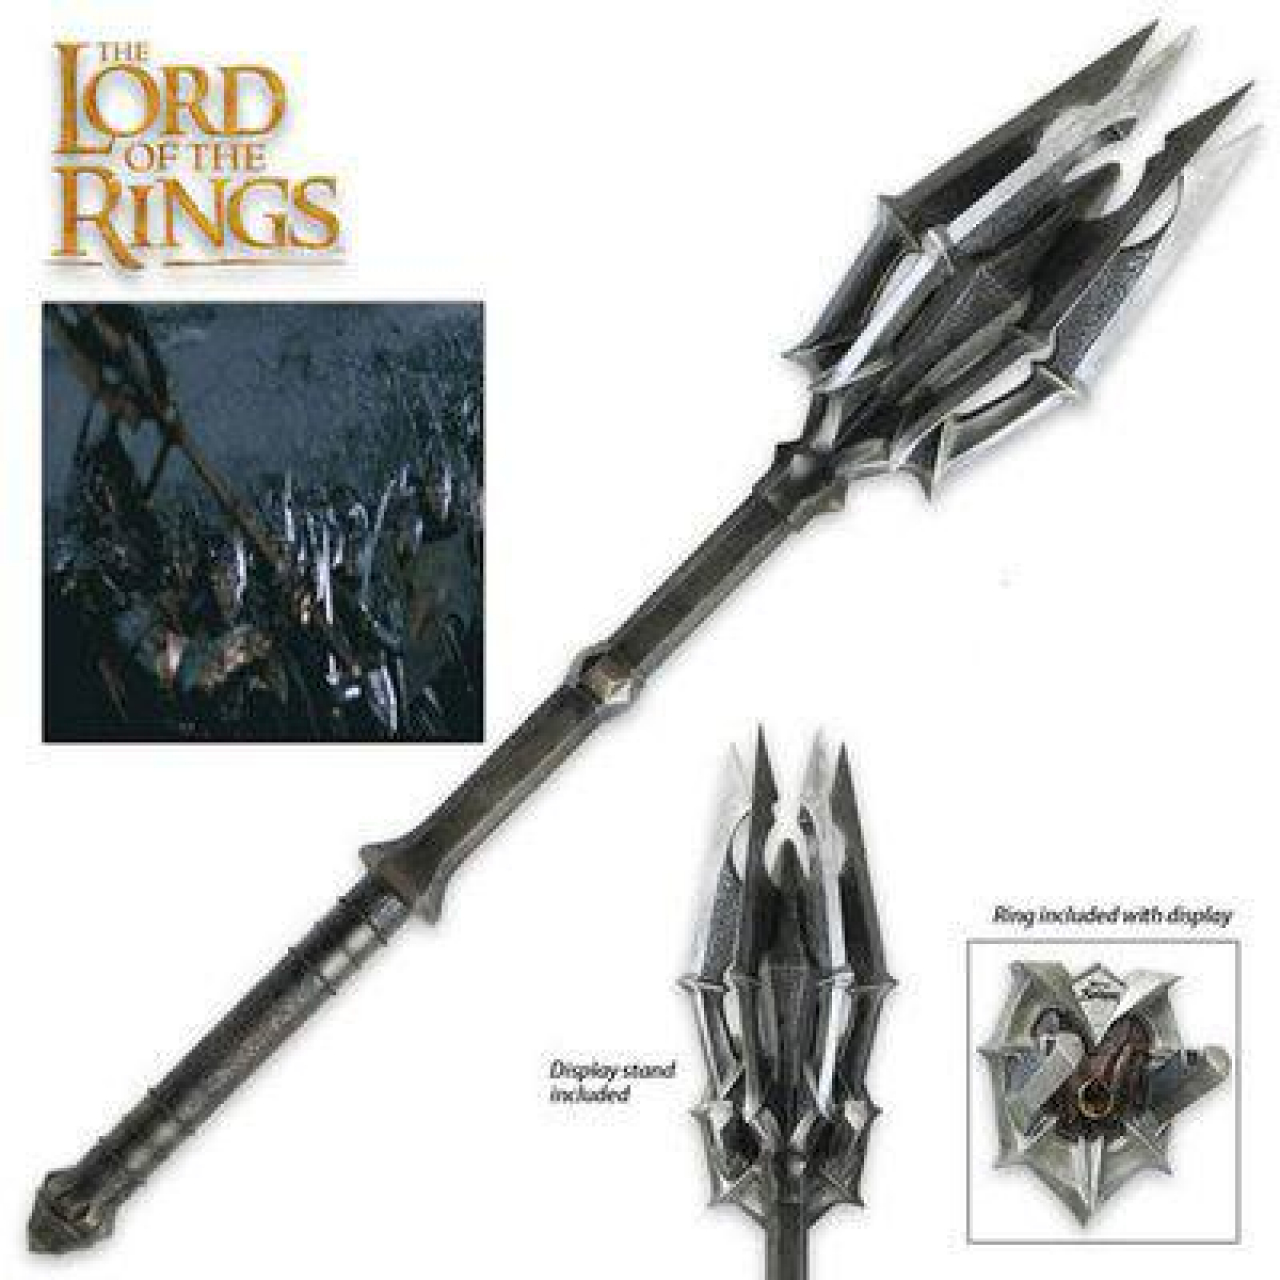 Lord of the Rings Replica 1/1 Mace of Sauron with One Ring